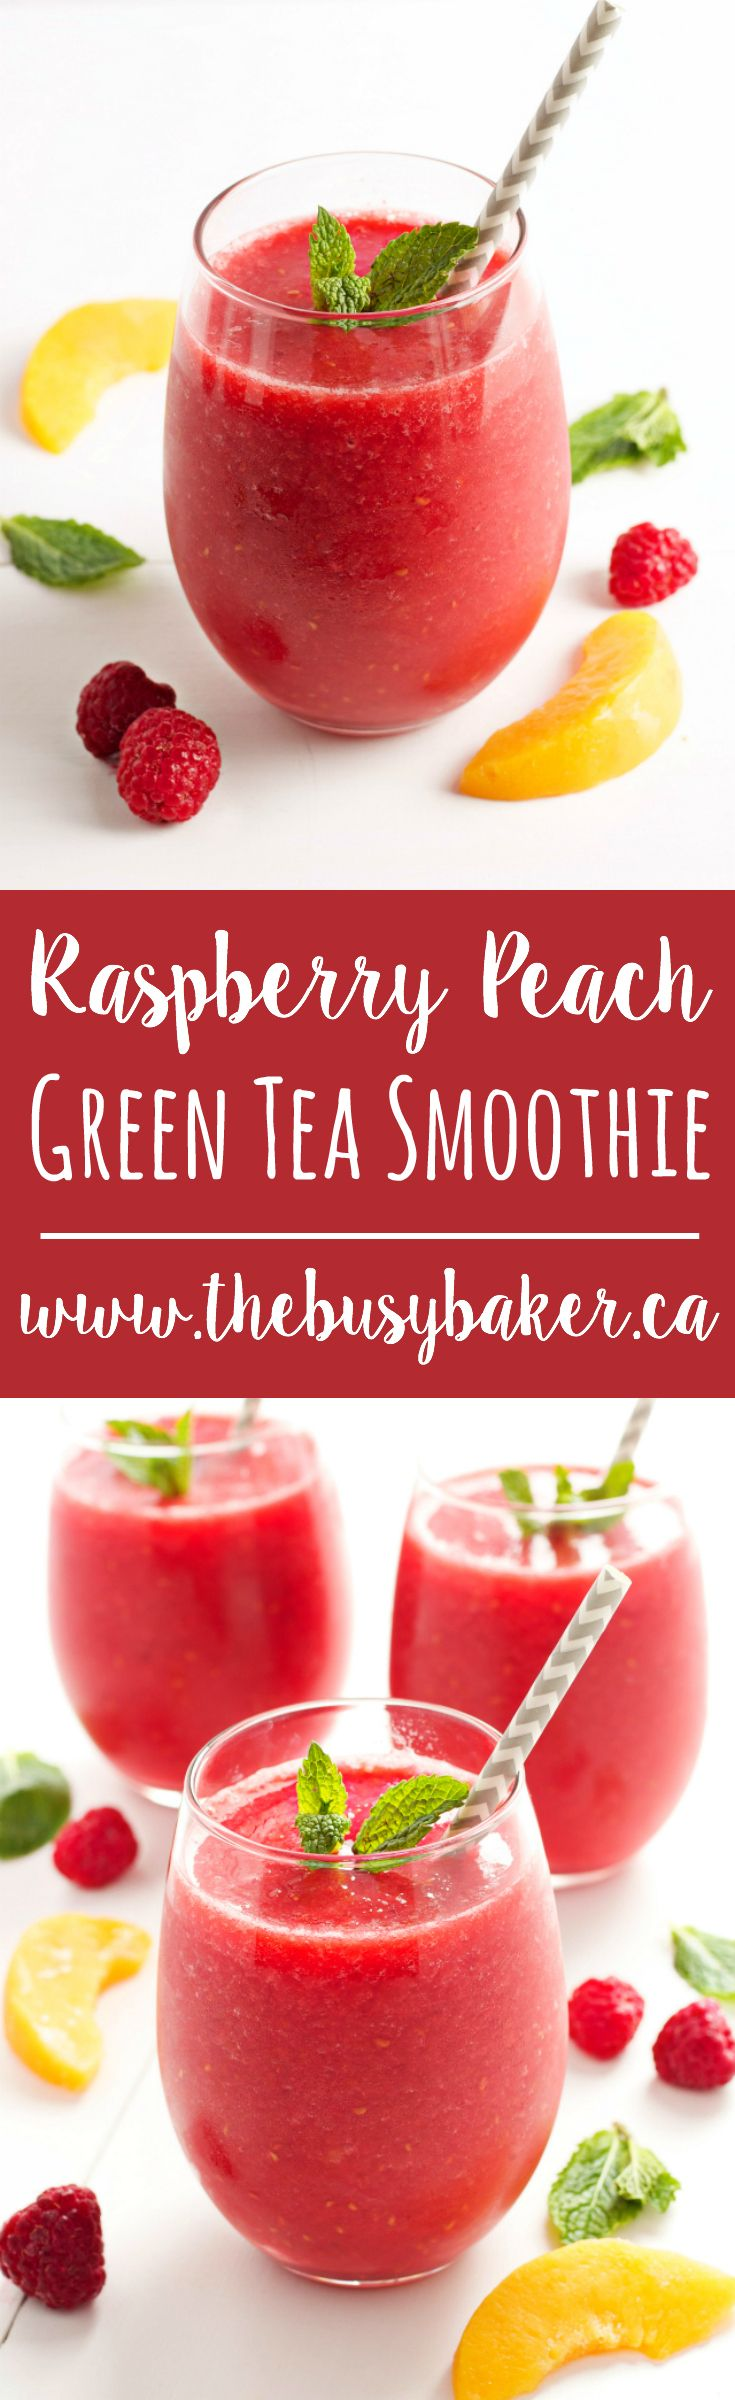 This+Raspberry+Peach+Green+Tea+Smoothie+a+refreshing+low-calorie+treat+that's+naturally+sweetened+only+with+fruit,+with+a+delicious+hint+of+iced+green+tea!+Recipe+from+thebusybaker.ca!+via+@busybakerblog